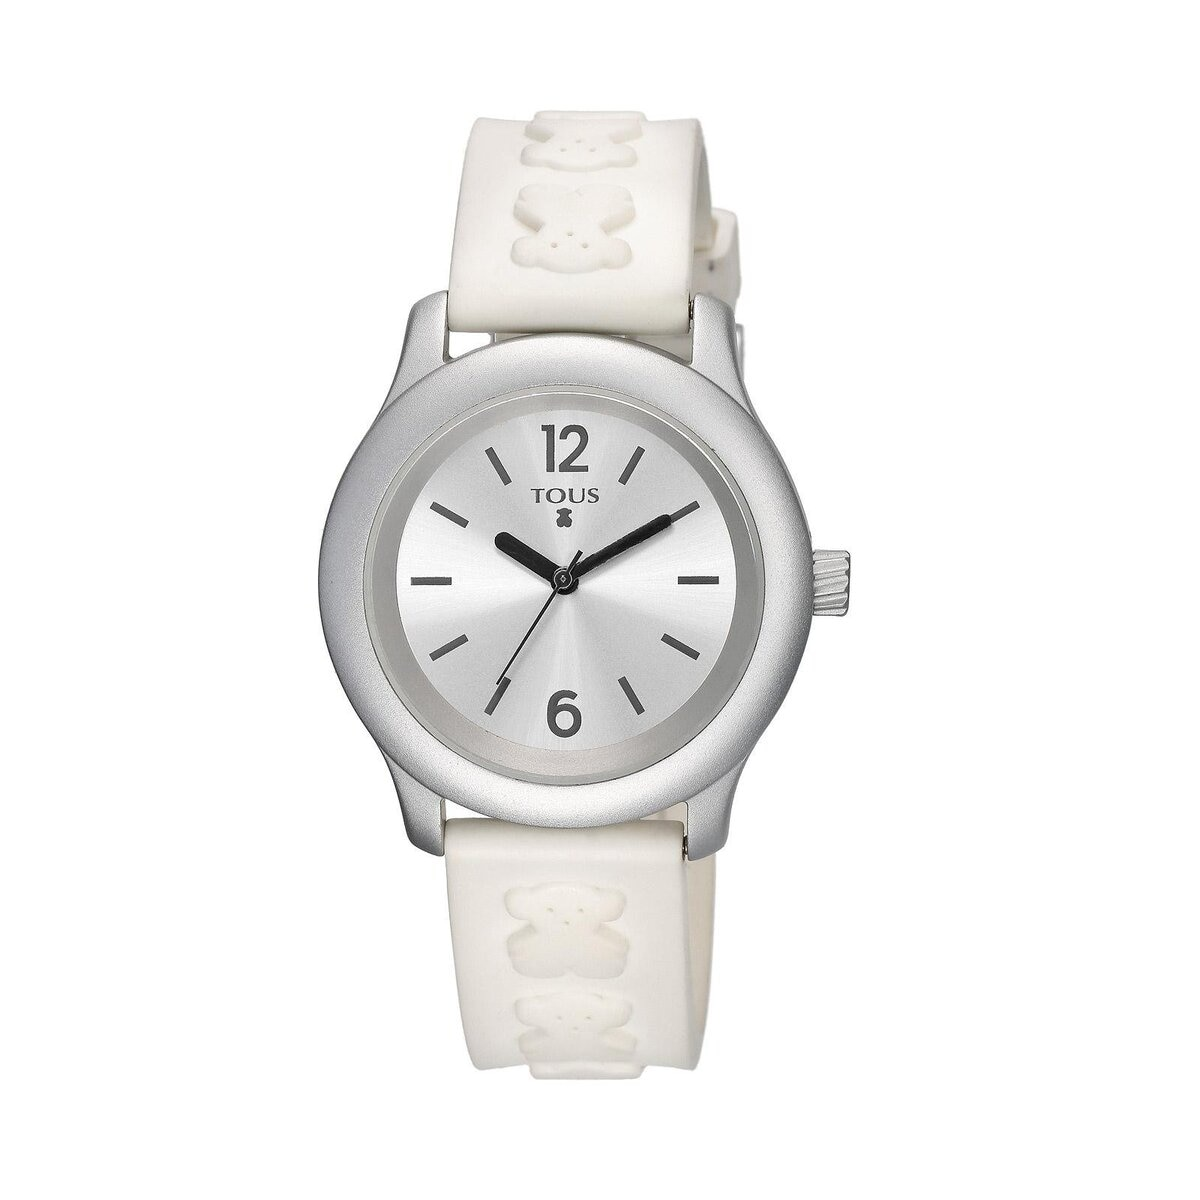 Anodized Aluminum Candy Watch with white Silicone strap